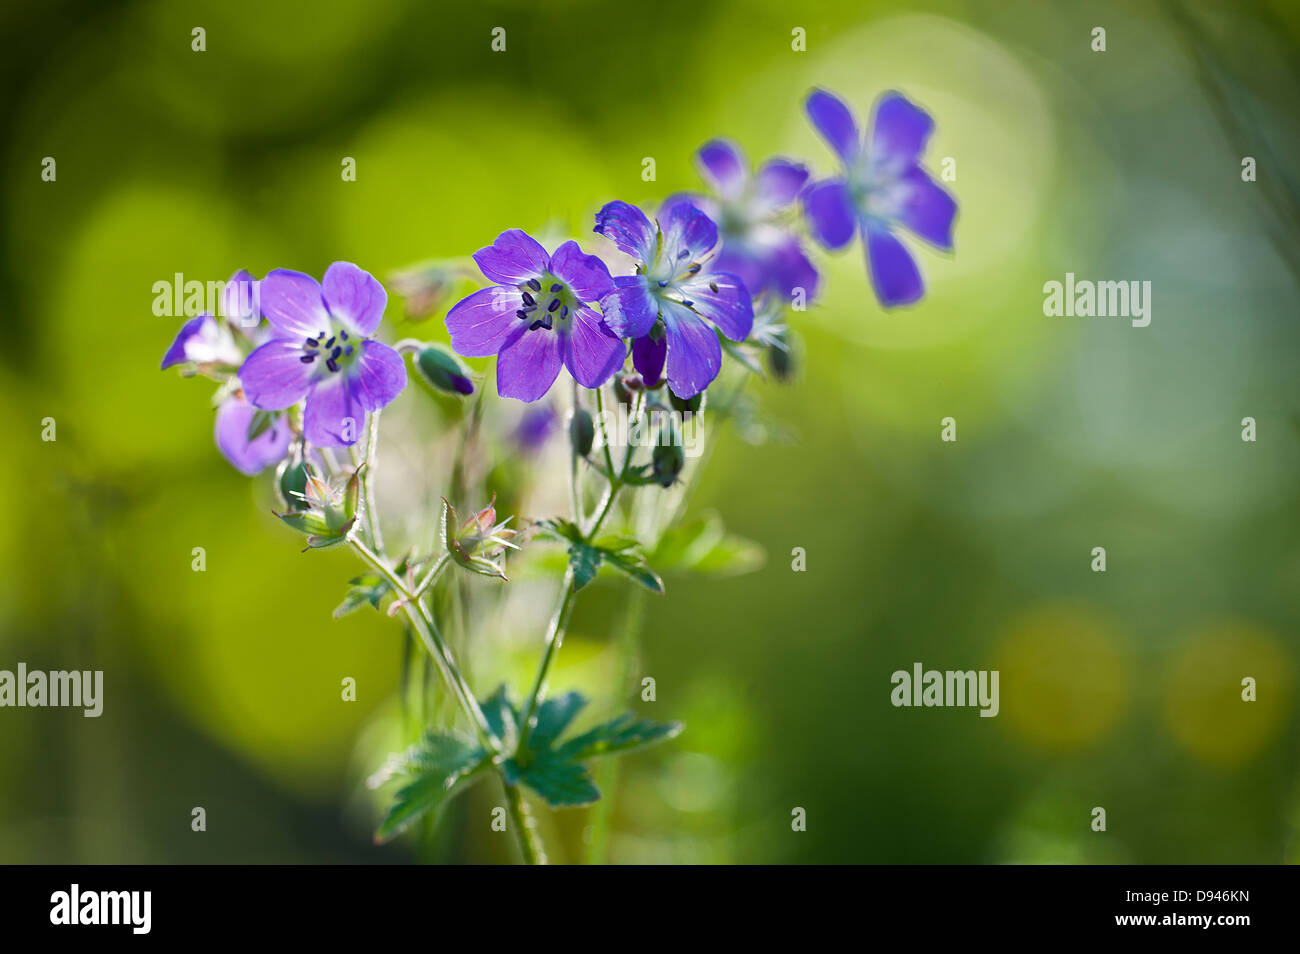 Blue Geraniaceae flowers, close-up - Stock Image